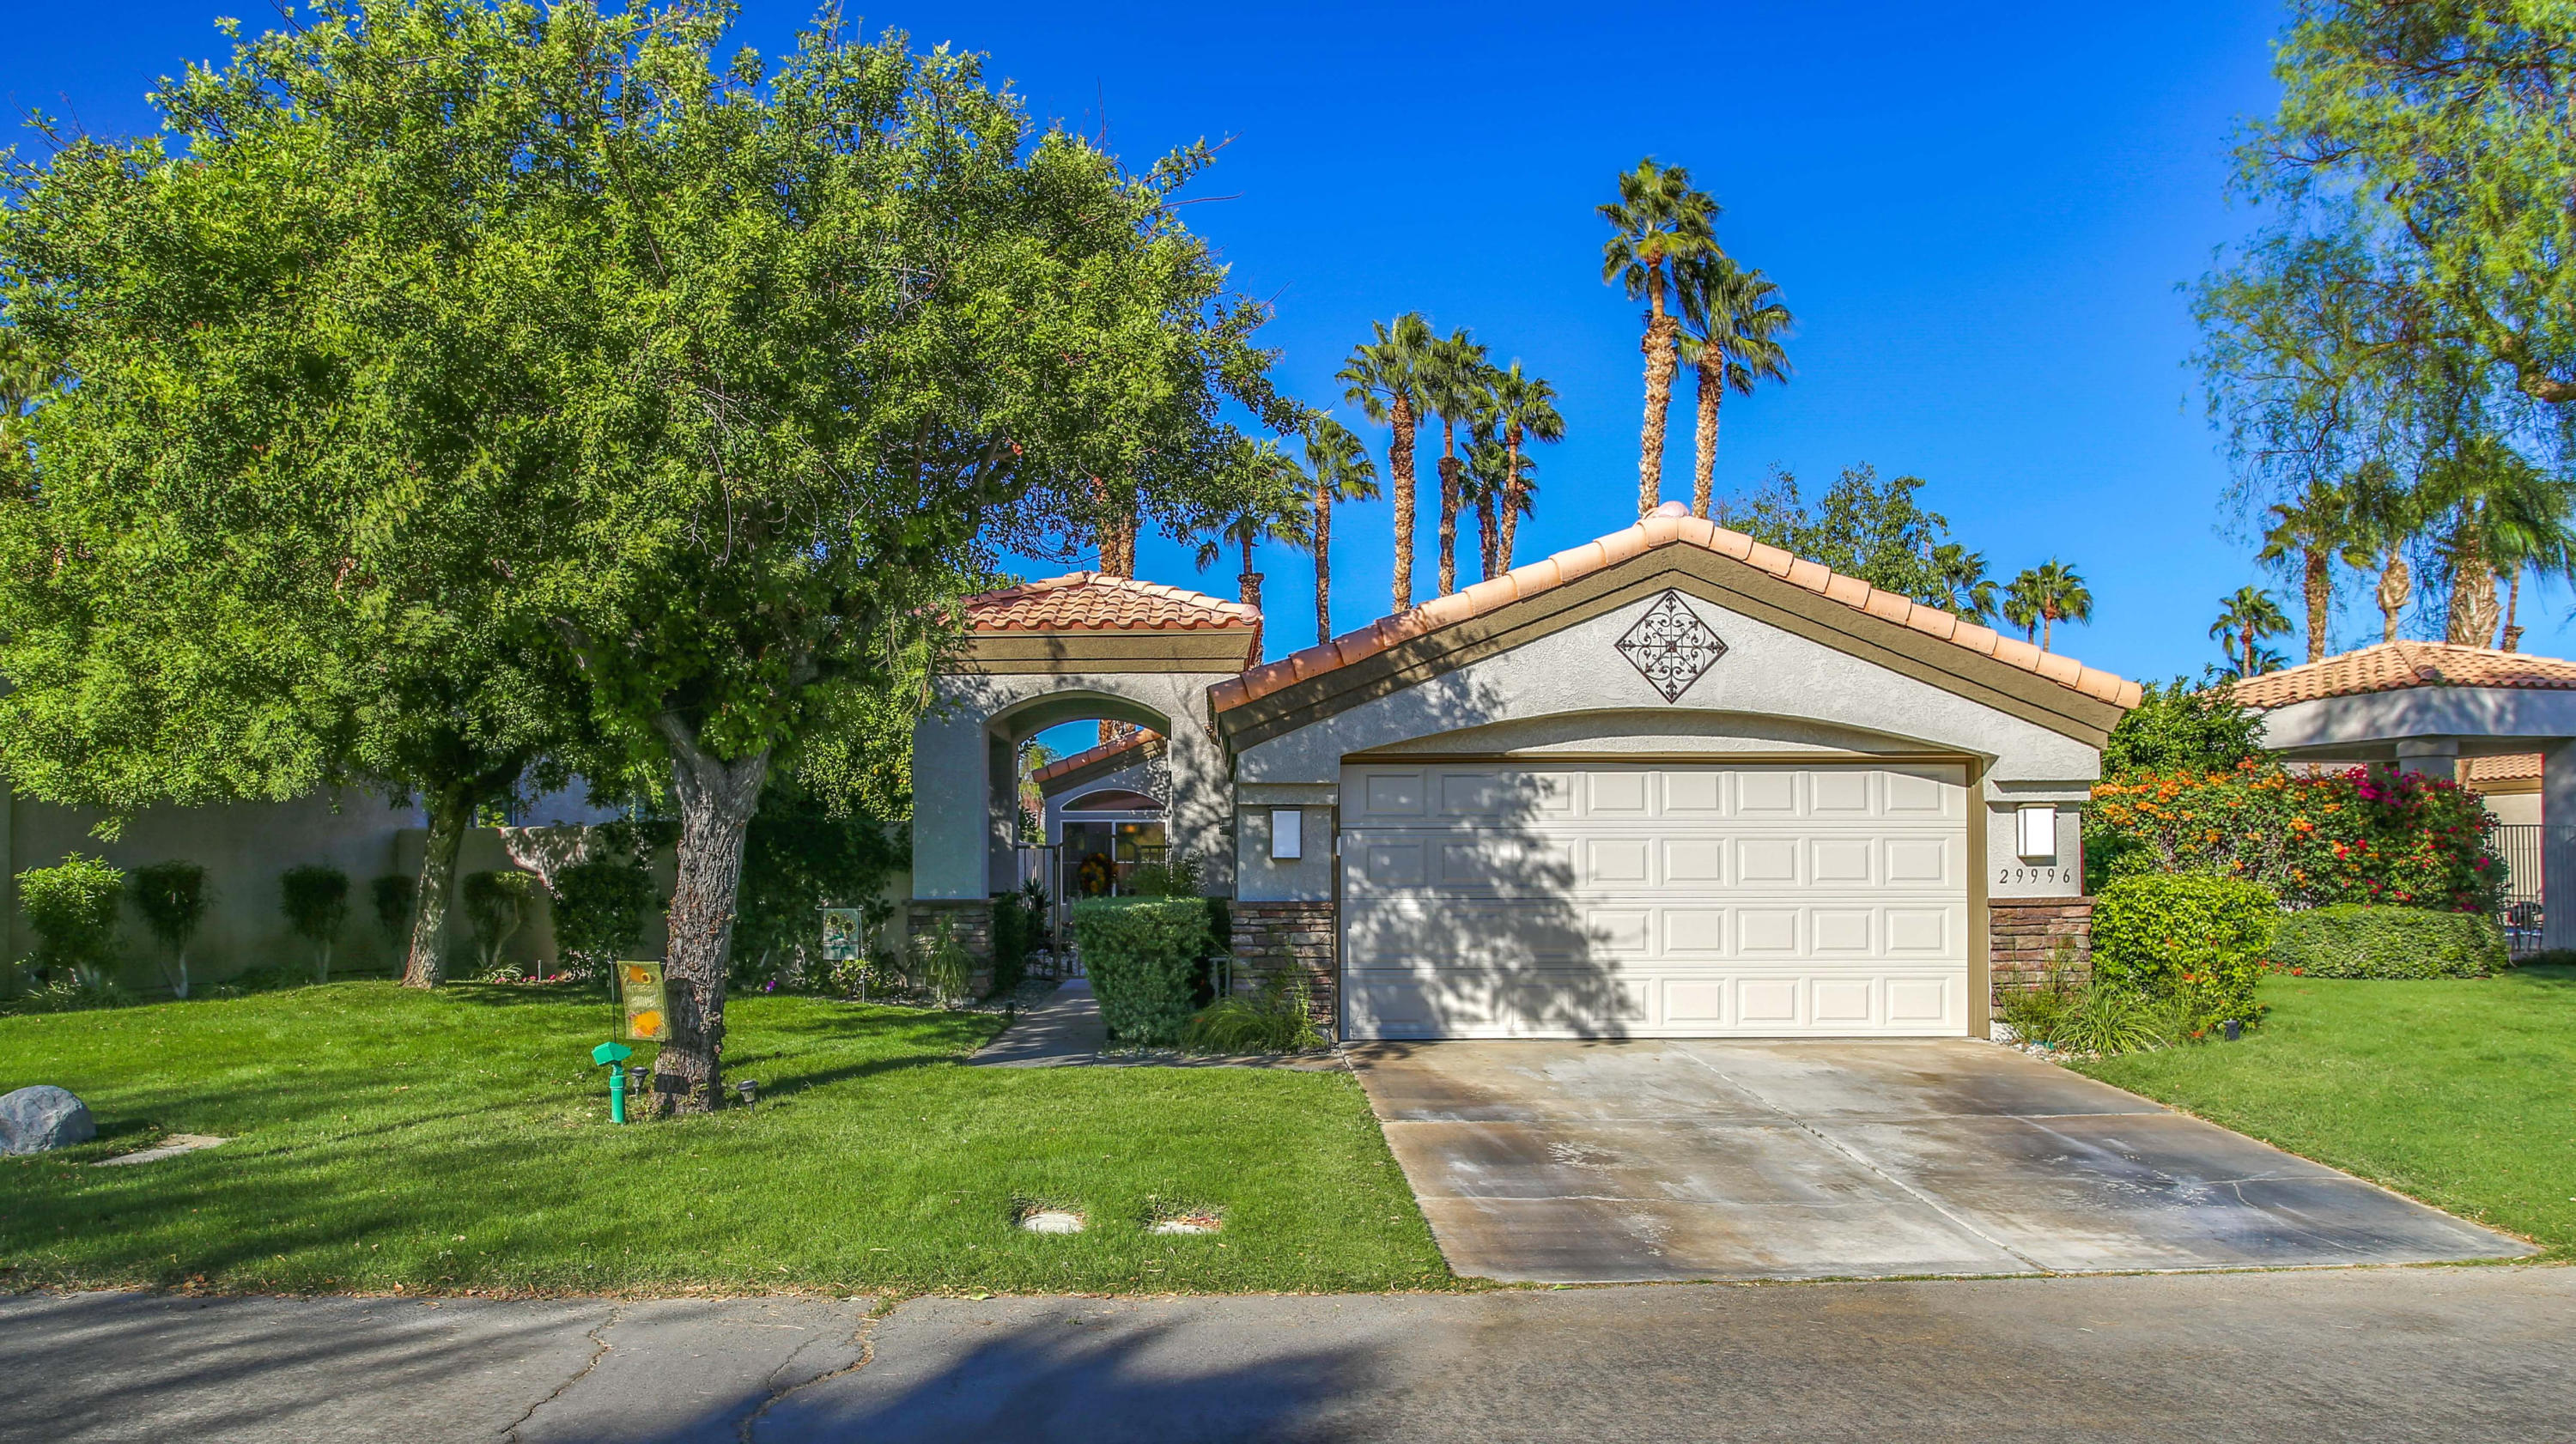 What a Gem, Completely updated, light and bright 2 bedroom villa is immaculate! Gorgeous views of the Golf course, Lakes, Chocolate Mountains.  Covered back patio with an extra large lot on the side. Offers a large master suite, Bright skylight and  you can walk right out to the Golf Course. Large tinted windows allowing you to enjoy the expansive views! Fire place! There is a formal dinning area as well as a separate office/den. Ceiling fans in every room, freshly painted, water heater installed 2019, New stainless steel appliances, Salt water purifier (owned), Reverse osmosis (owned) Custom landscaping... exterior painted in 2019. This home is being sold beautifully furnished. Home is equipped with Tesla solar at $206.17 per month for 15 years. The Desert Princess community has an affordable 27 hole PGA Championship golf course, This quiet community is away from the noise yet less than ten minutes from Palm Springs International Airport. Desert Princess has 34 swimming pools, 10 Tennis Courts, Health and Fitness Center. Land lease expires 2069, ground rent is $173.28 per month.